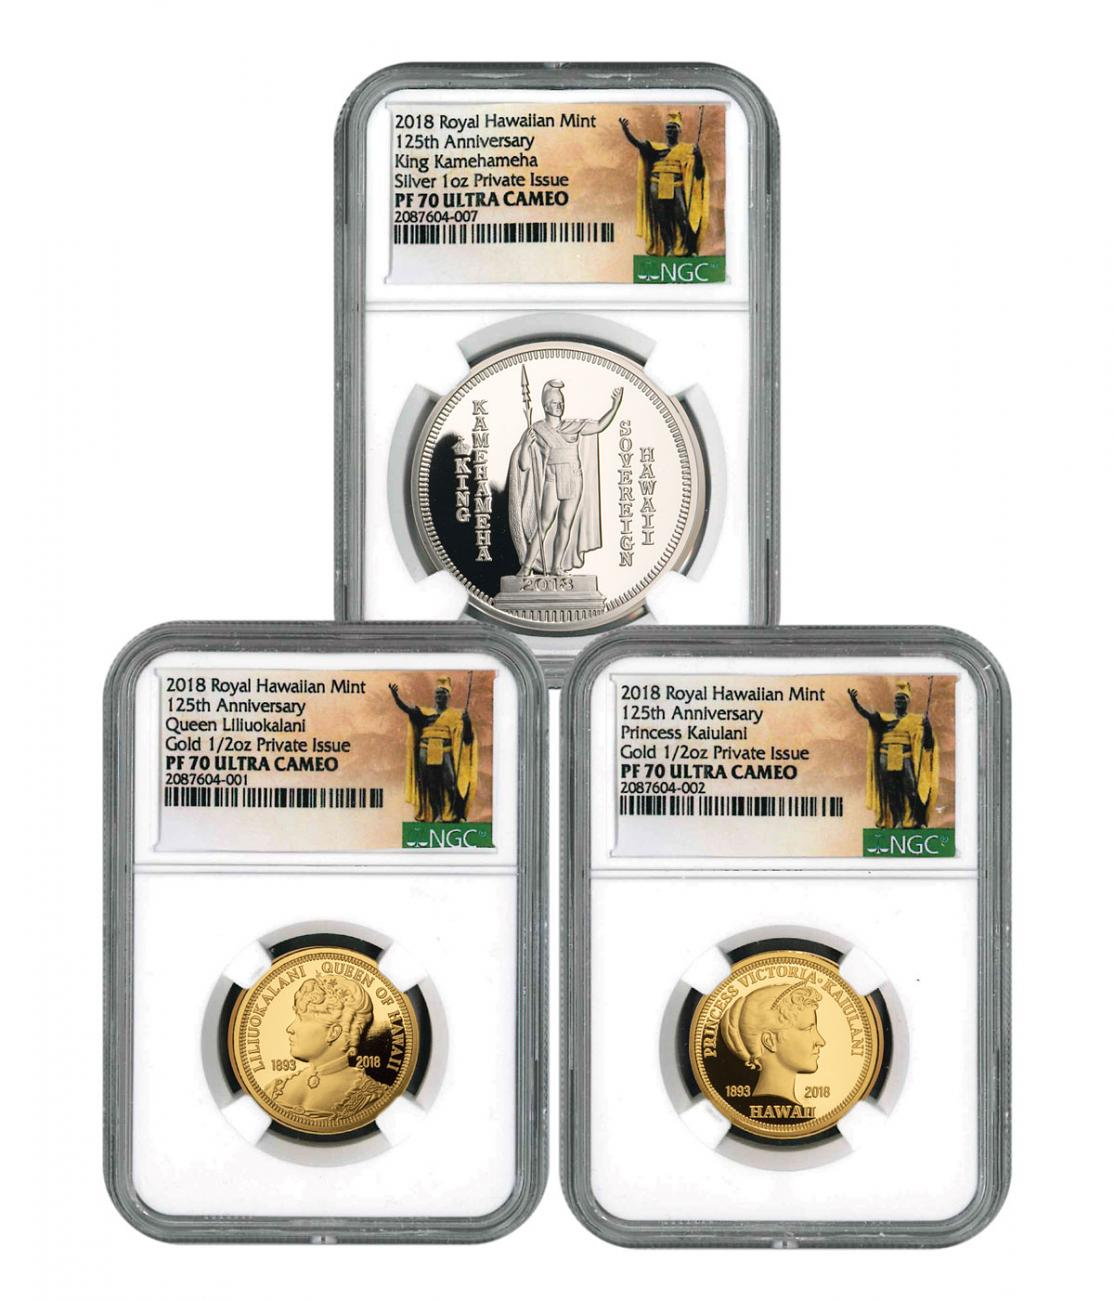 2018 Royal Hawaiian Mint King Kalakaua I 125th Anniversary 3-Coin Set Gold + Silver Proof Medal NGC PF70